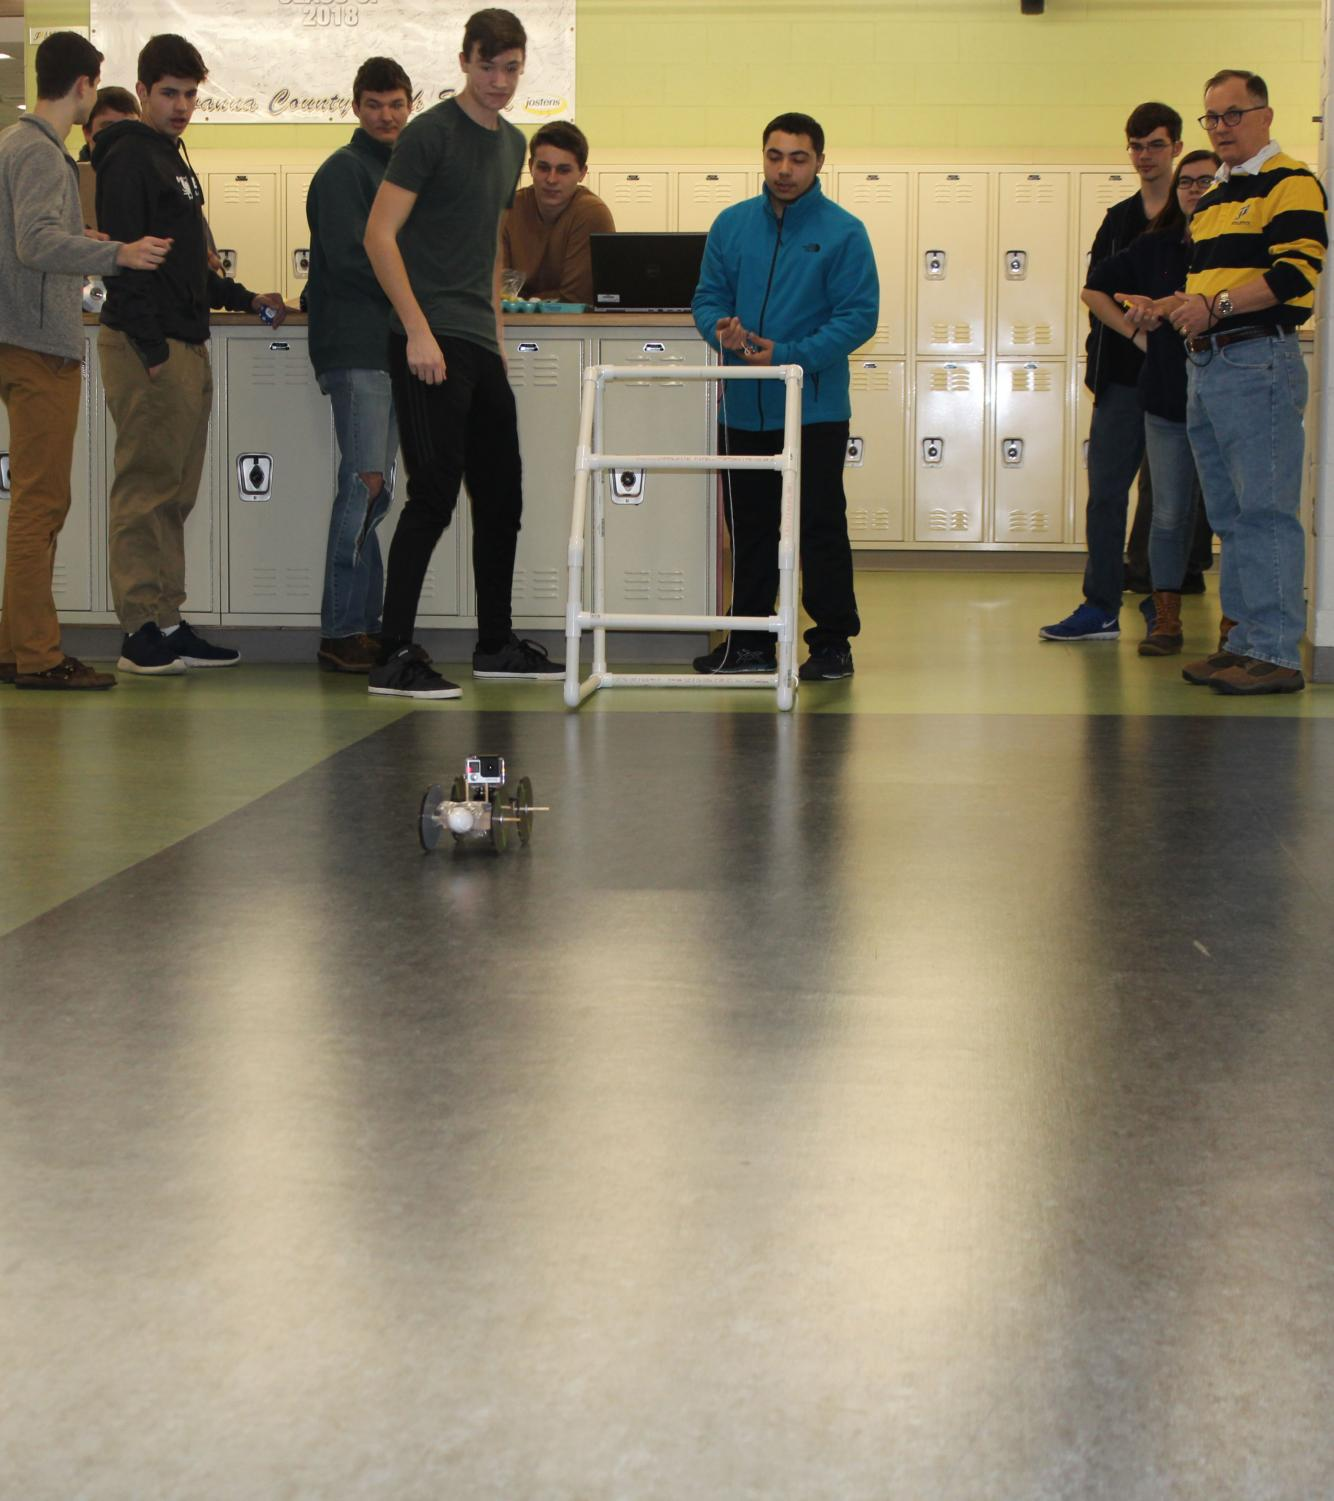 Challenge winners Juniors Andrew Farruggio and Cory Martin launching their device. Photo courtesy of Syerra Milliman